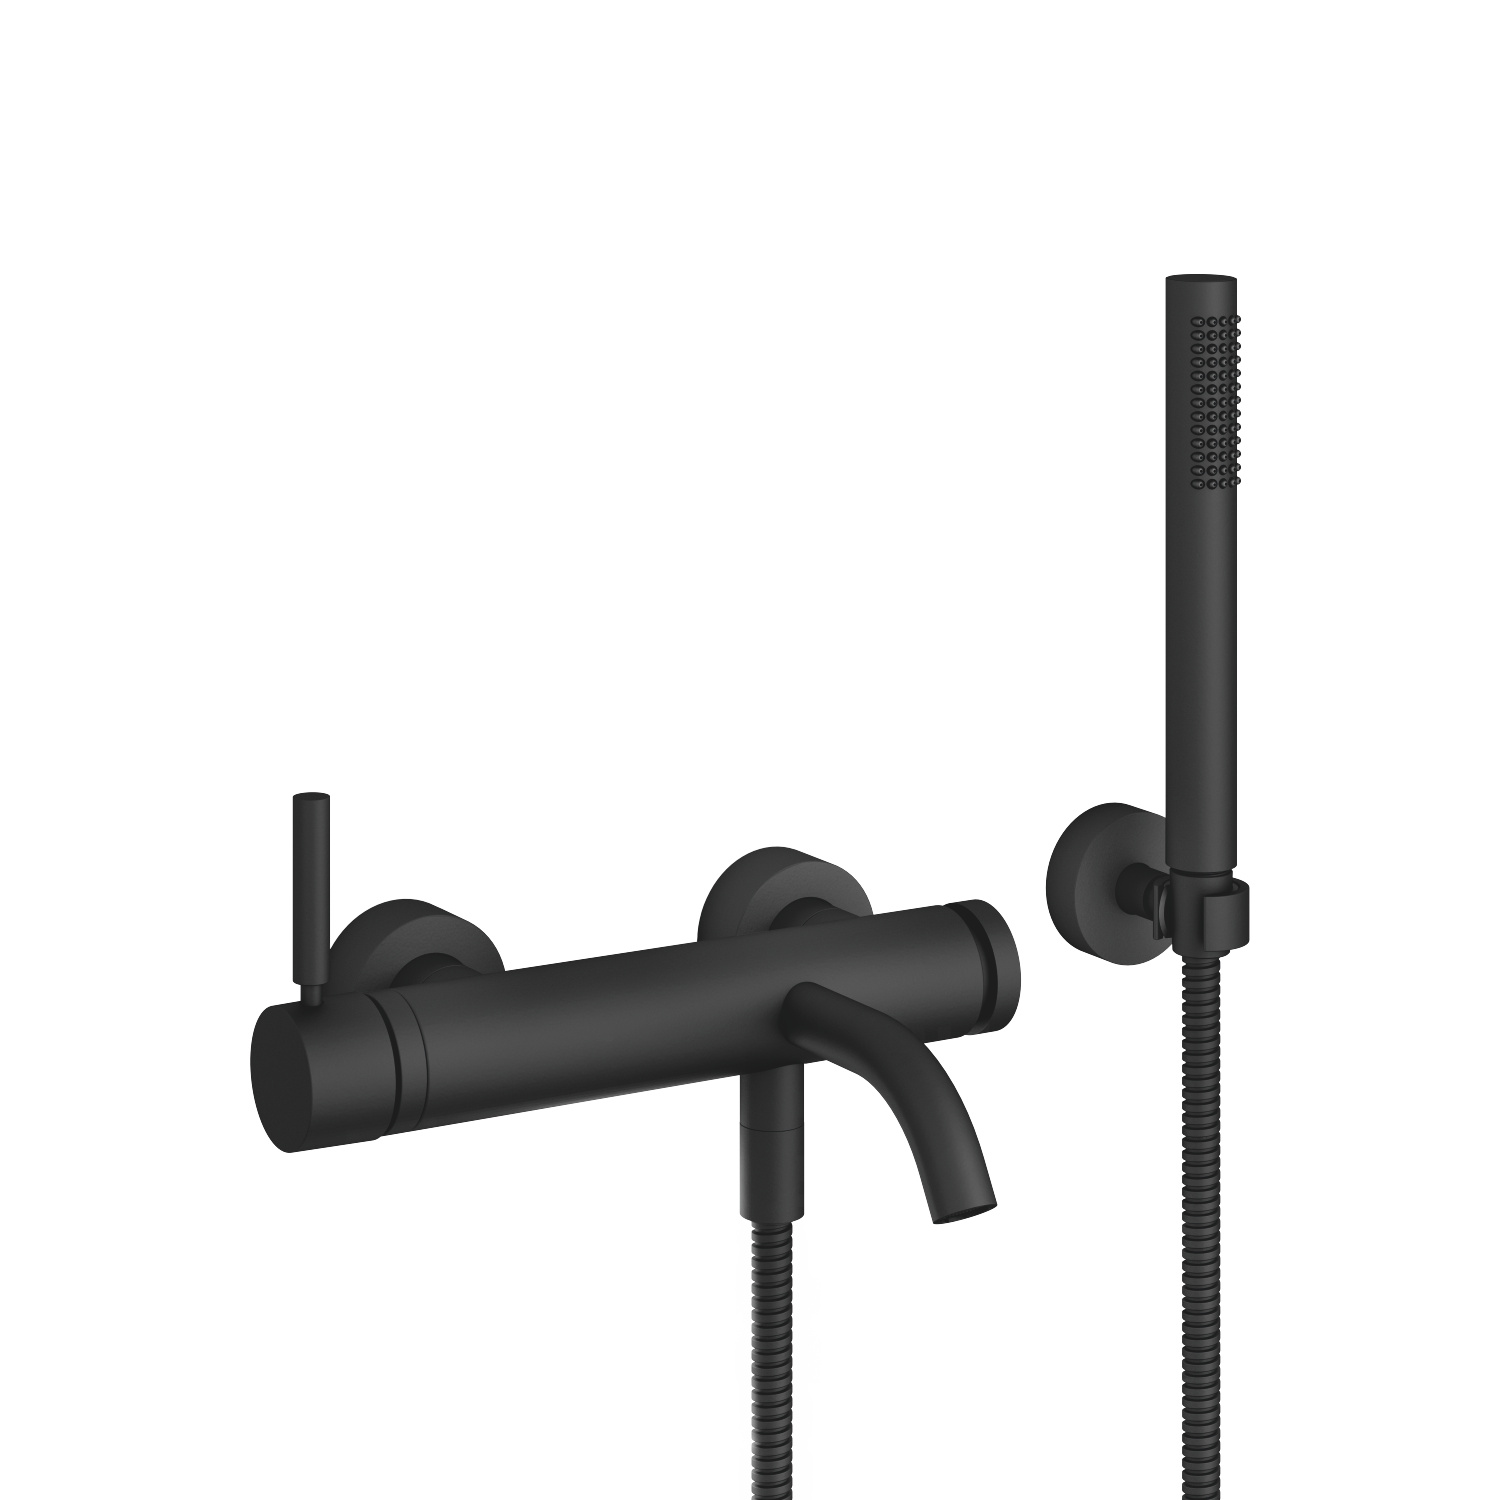 Single-lever bath mixer for wall mounting with hand shower set - matt black - 33 233 660-33